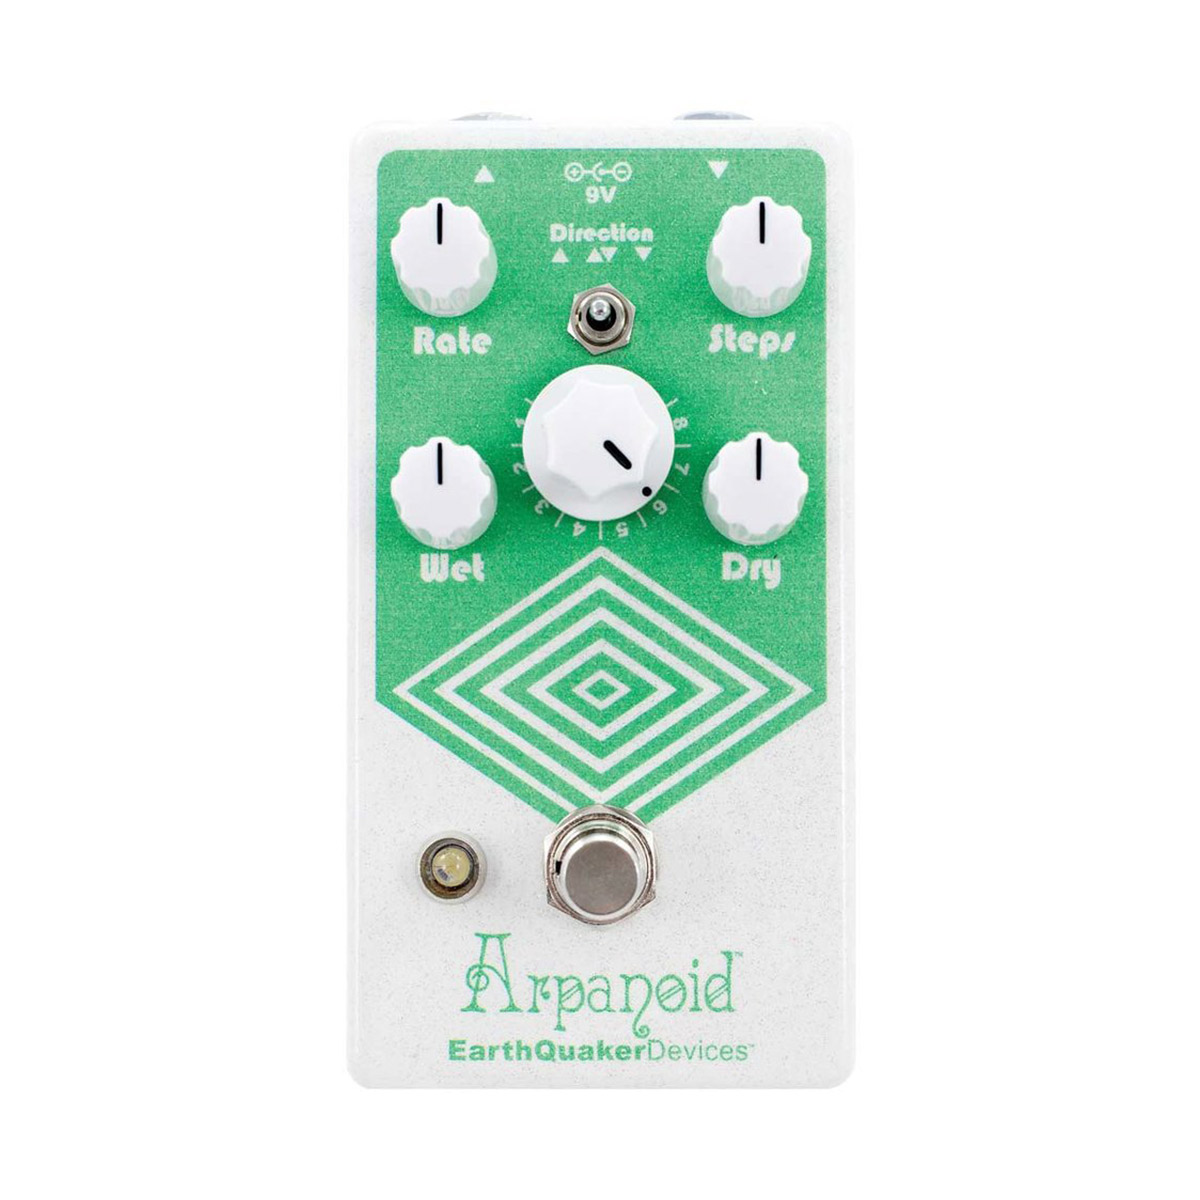 EarthQuaker Devices Arpanoid コンパクトエフェクター アルペジエーター 【アースクエイカーデバイス】